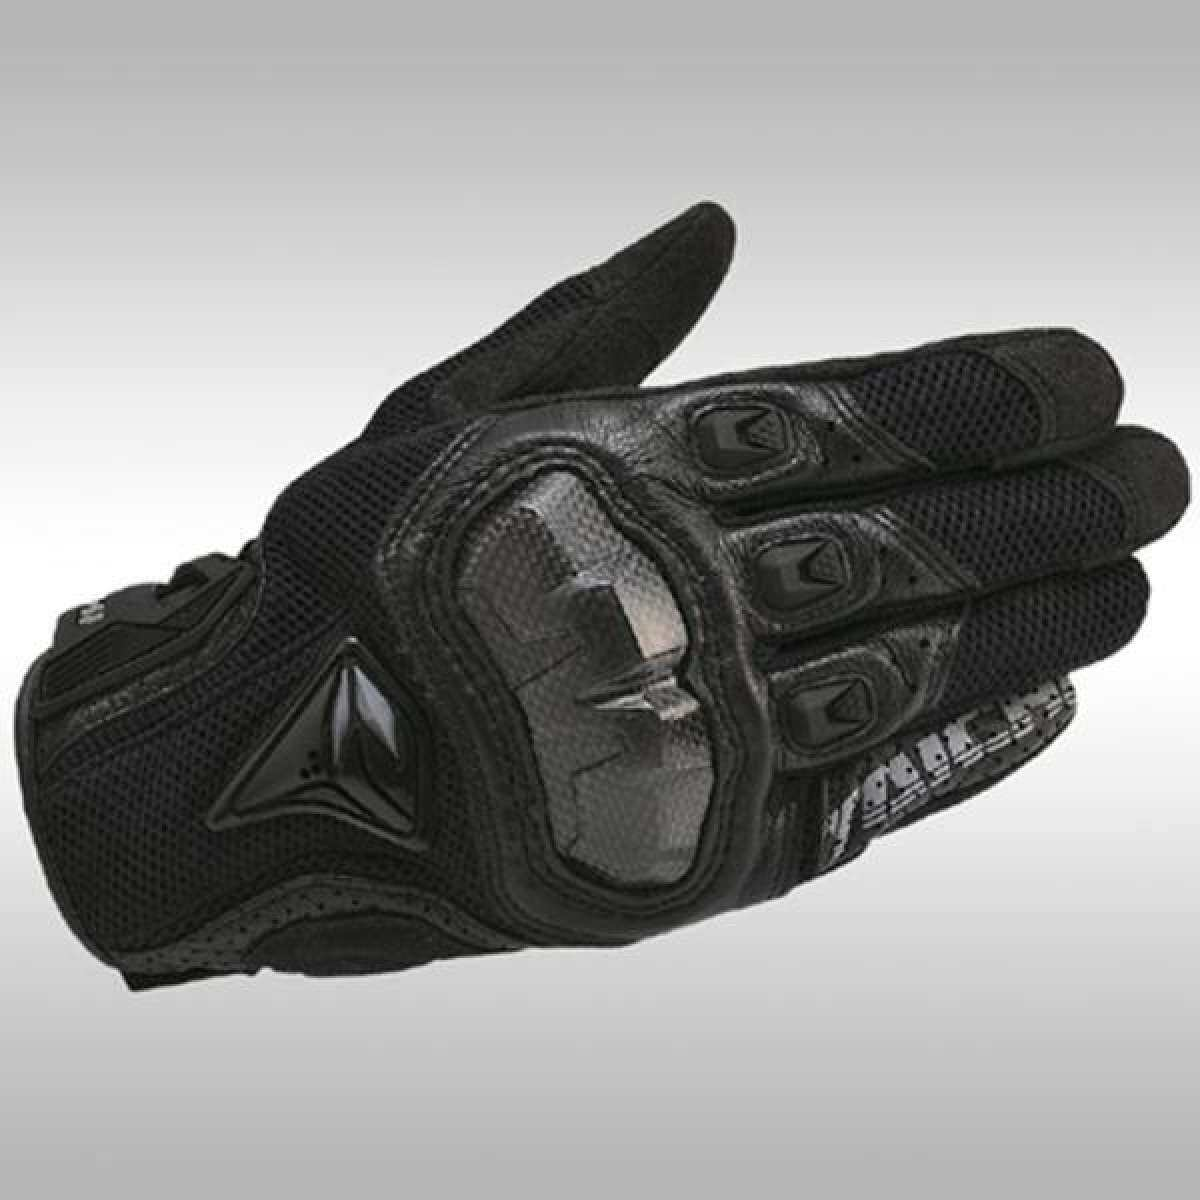 RS Taichi RST391 Mens Perforated leather Motorcycle Mesh Gloves- XL size